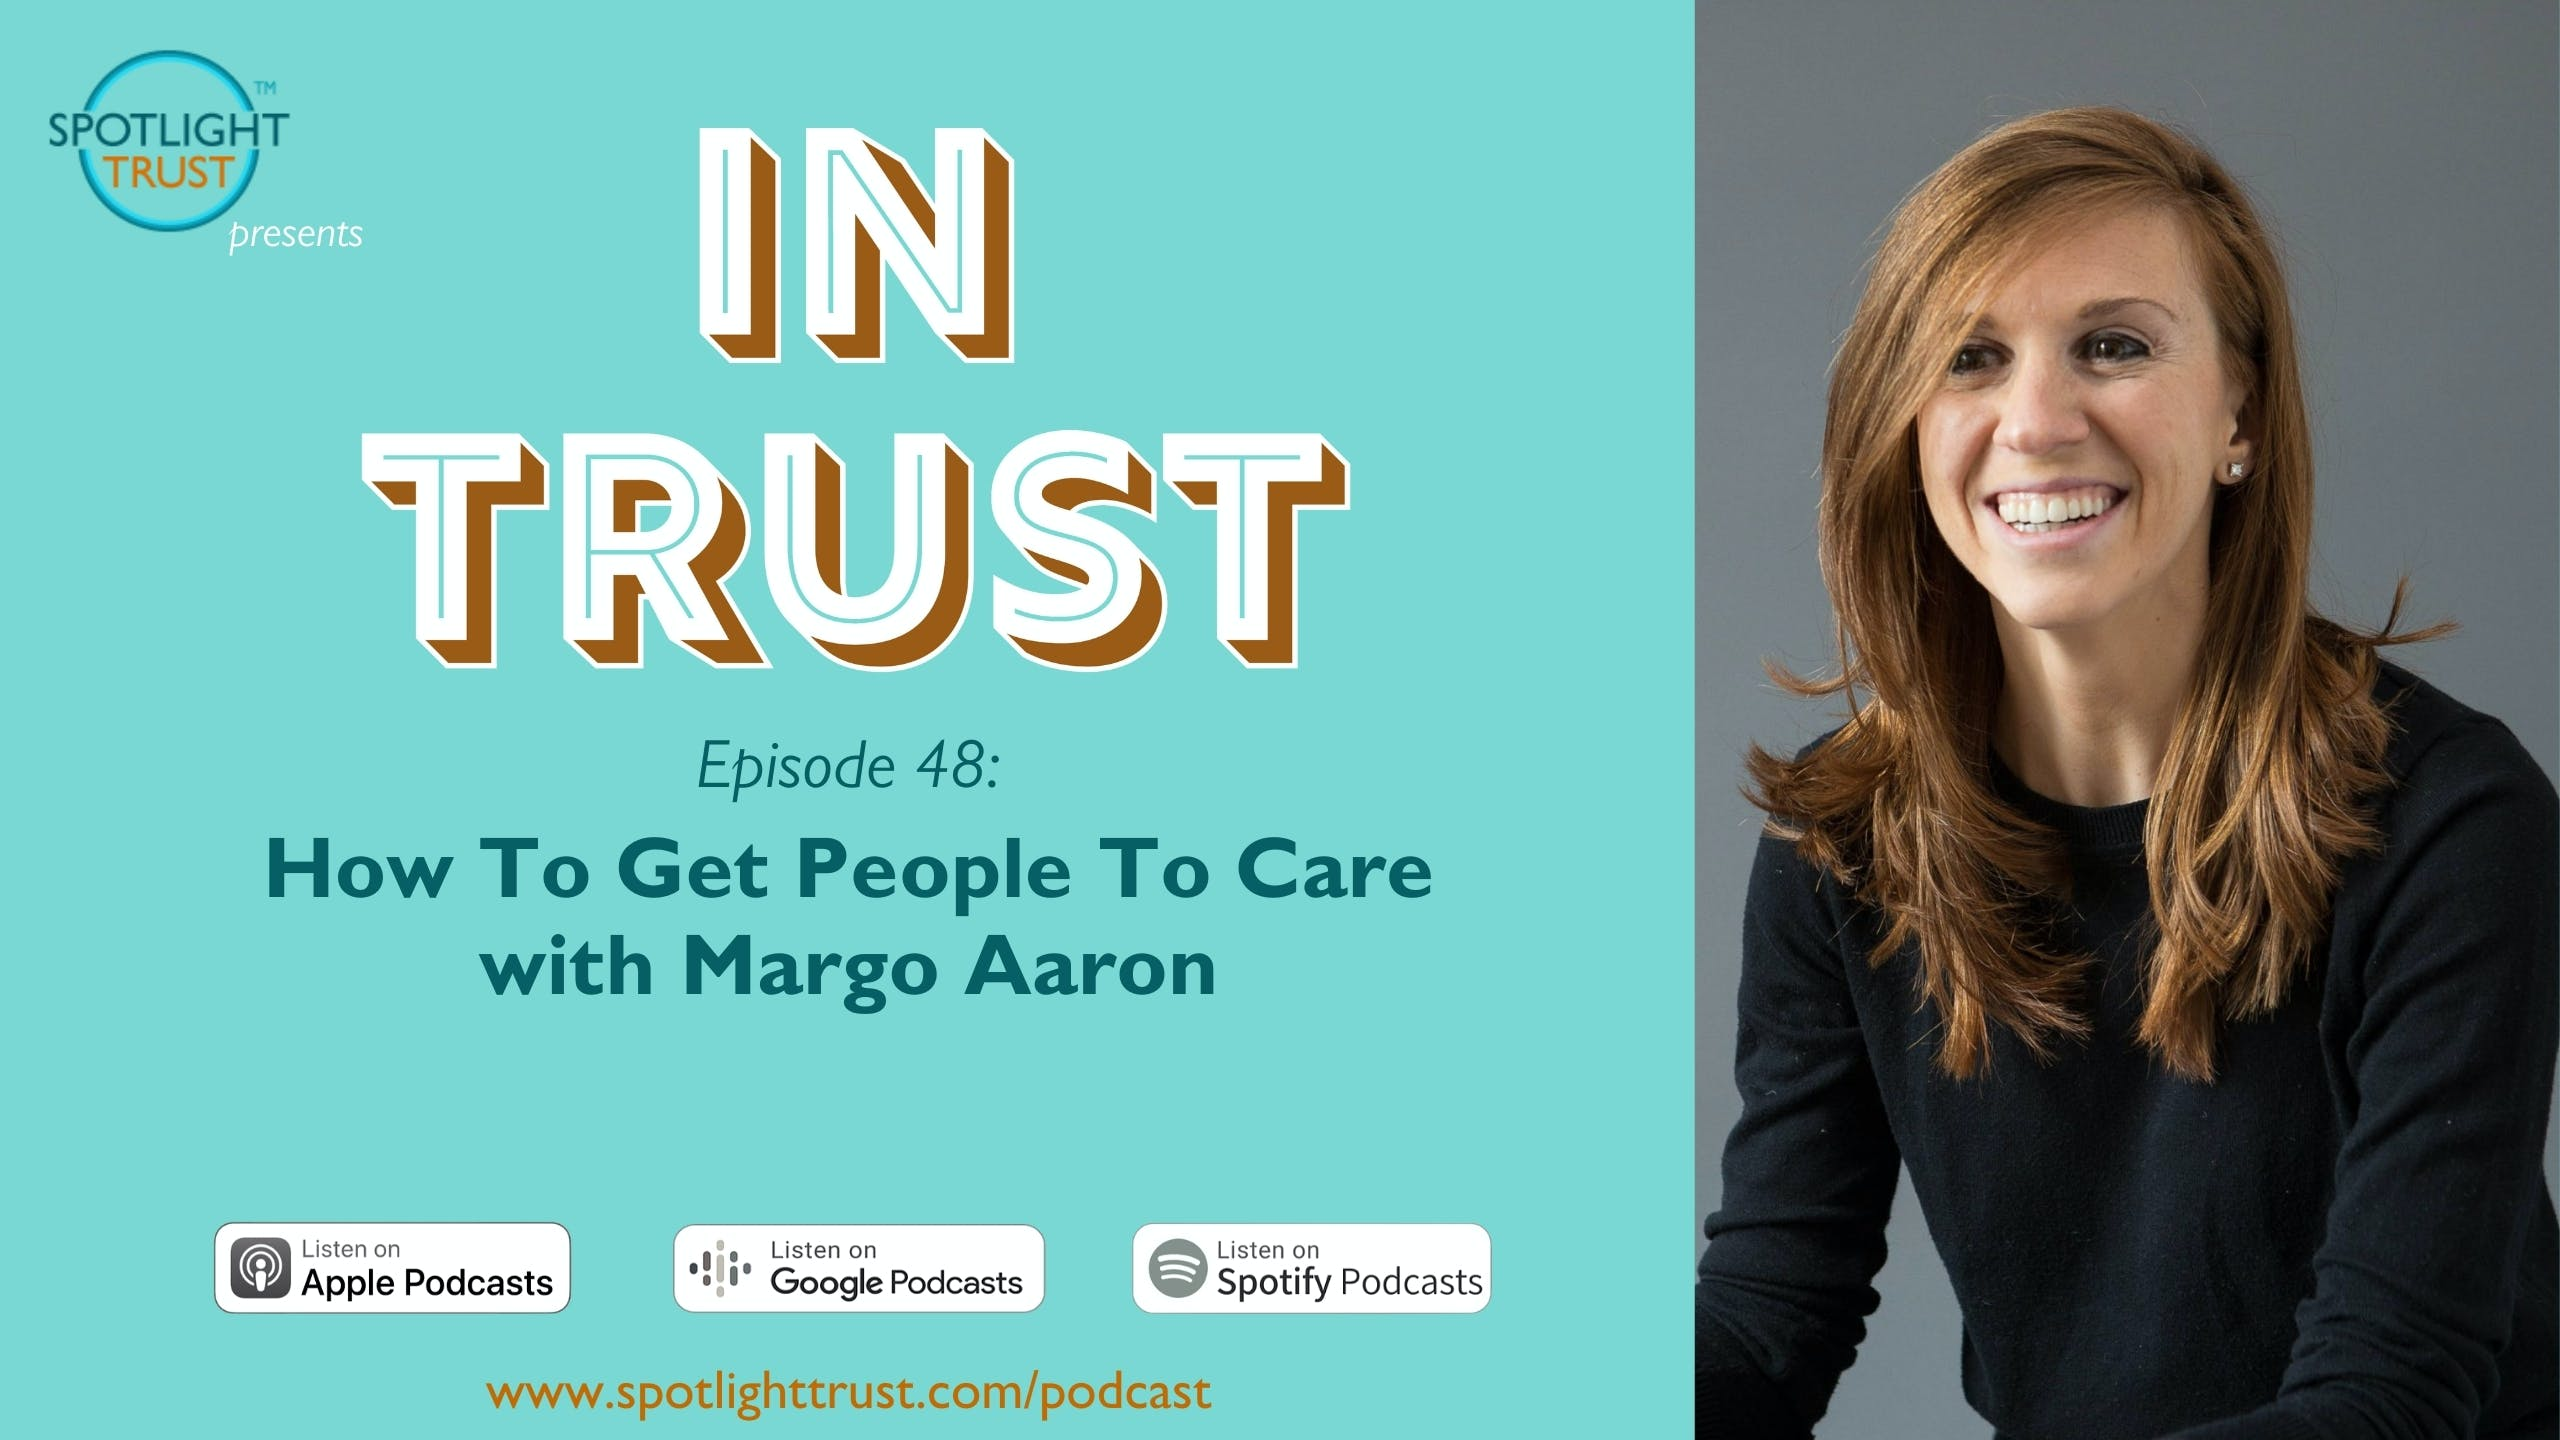 How To Get People To Care with Margo Aaron